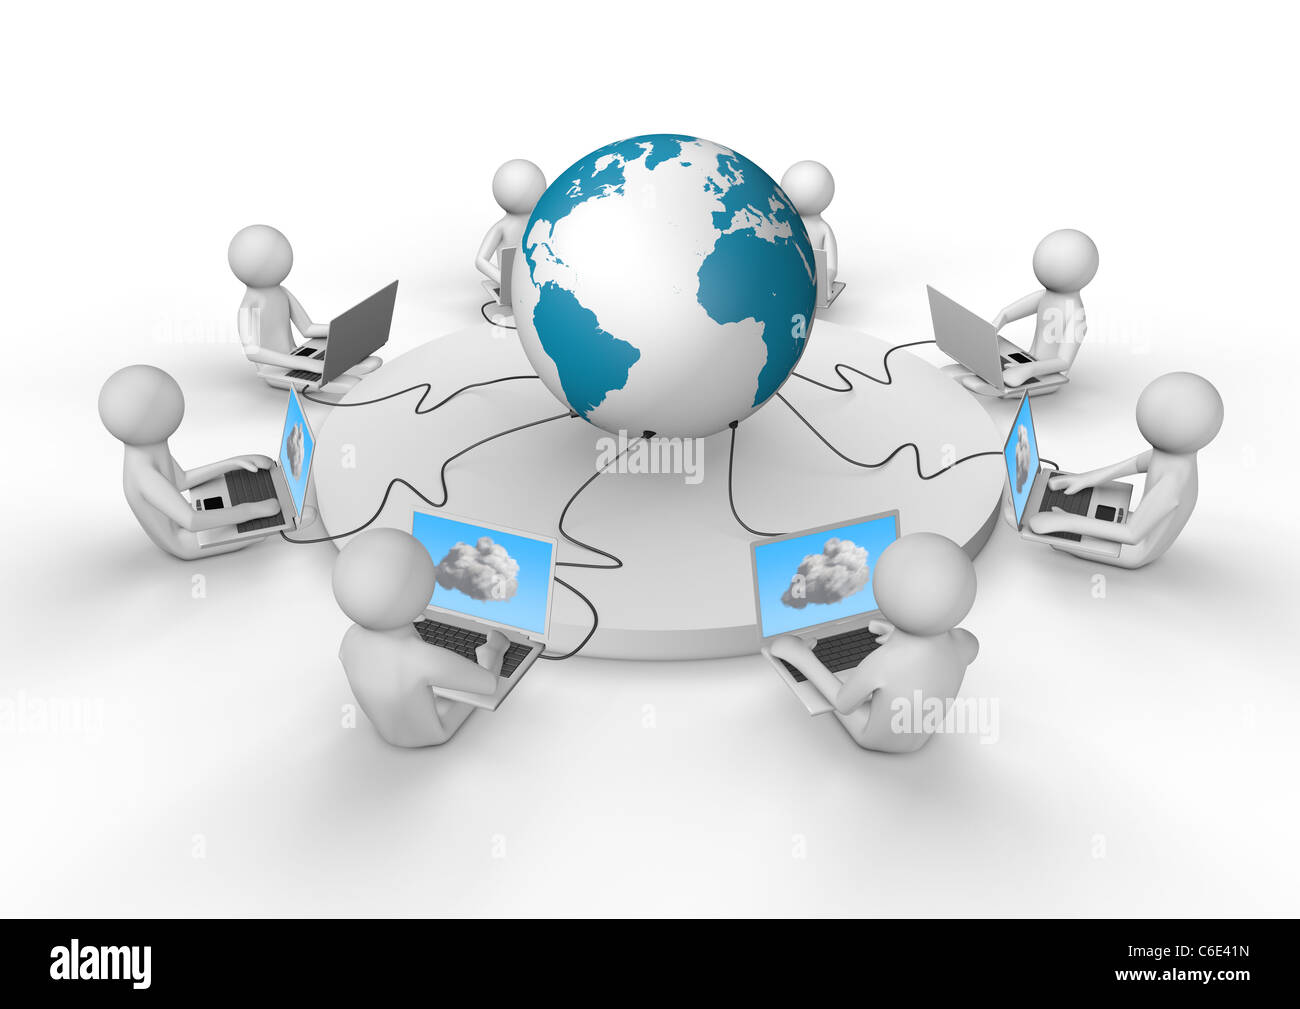 Render Several Laptops Connected Wire Stock Photos Laptop Connections For Wiring Diagram Of By To The Internet And Cloud Image